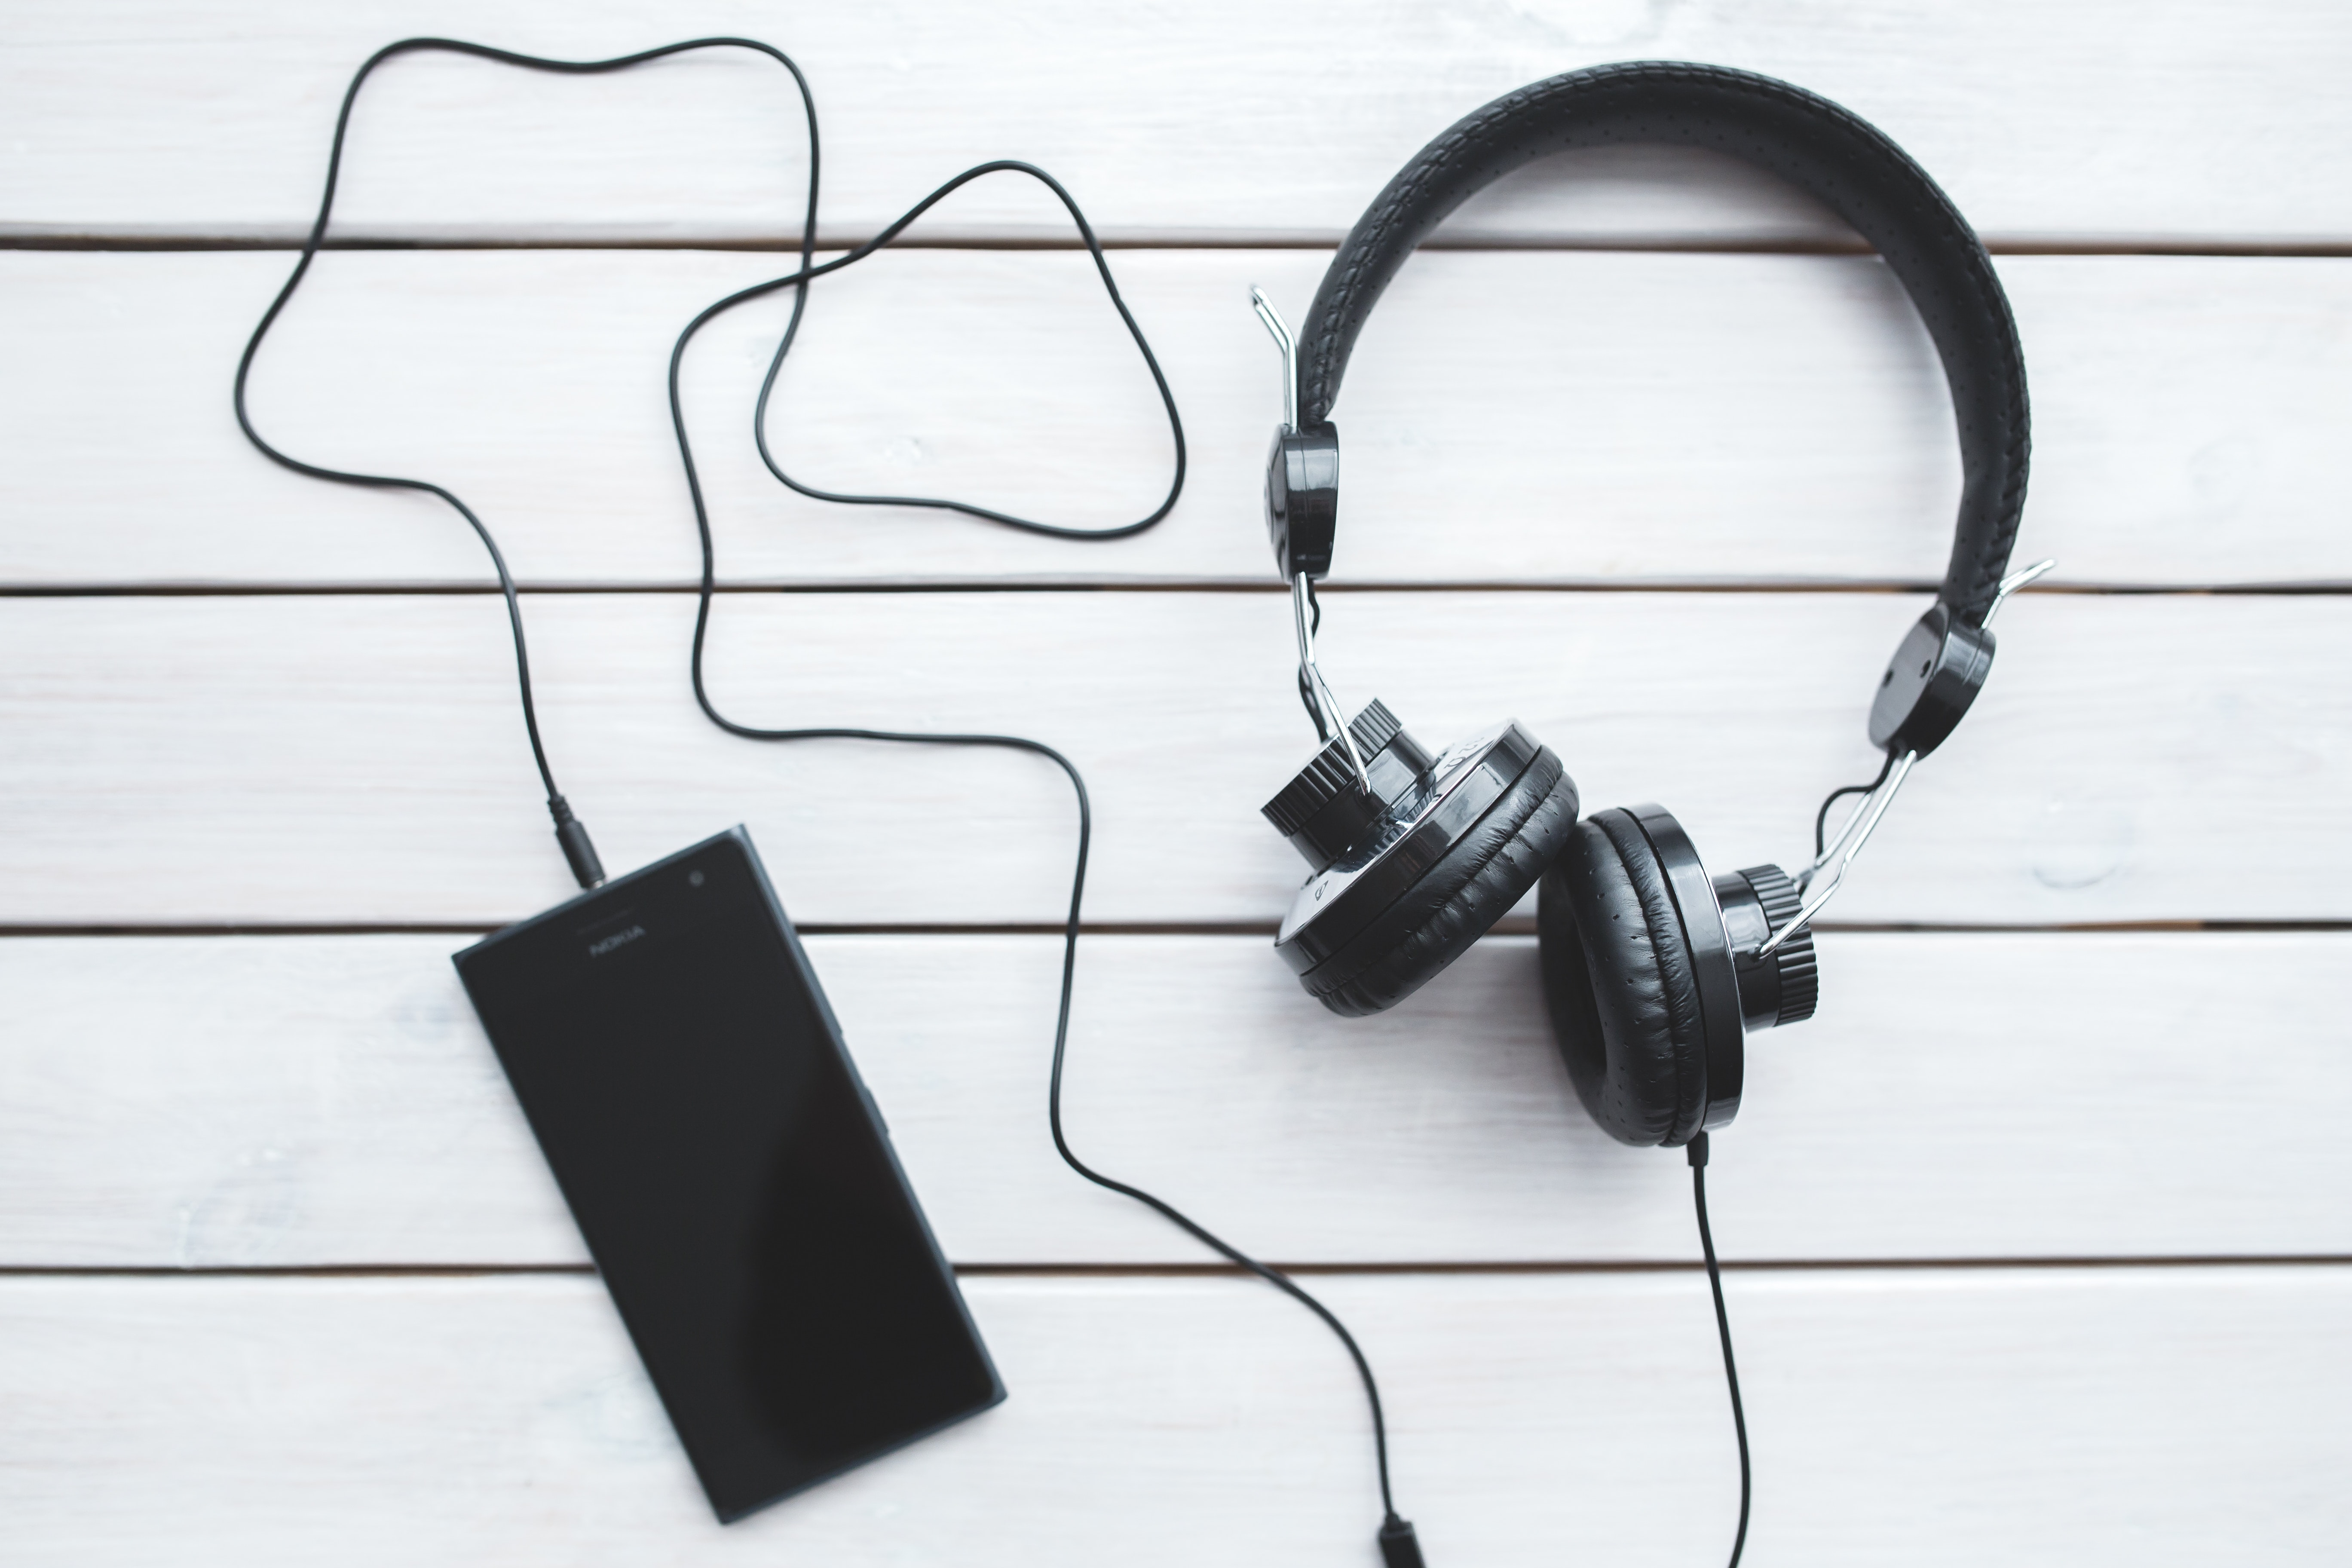 Top Innovation Podcasts to Play on Your Way to Work